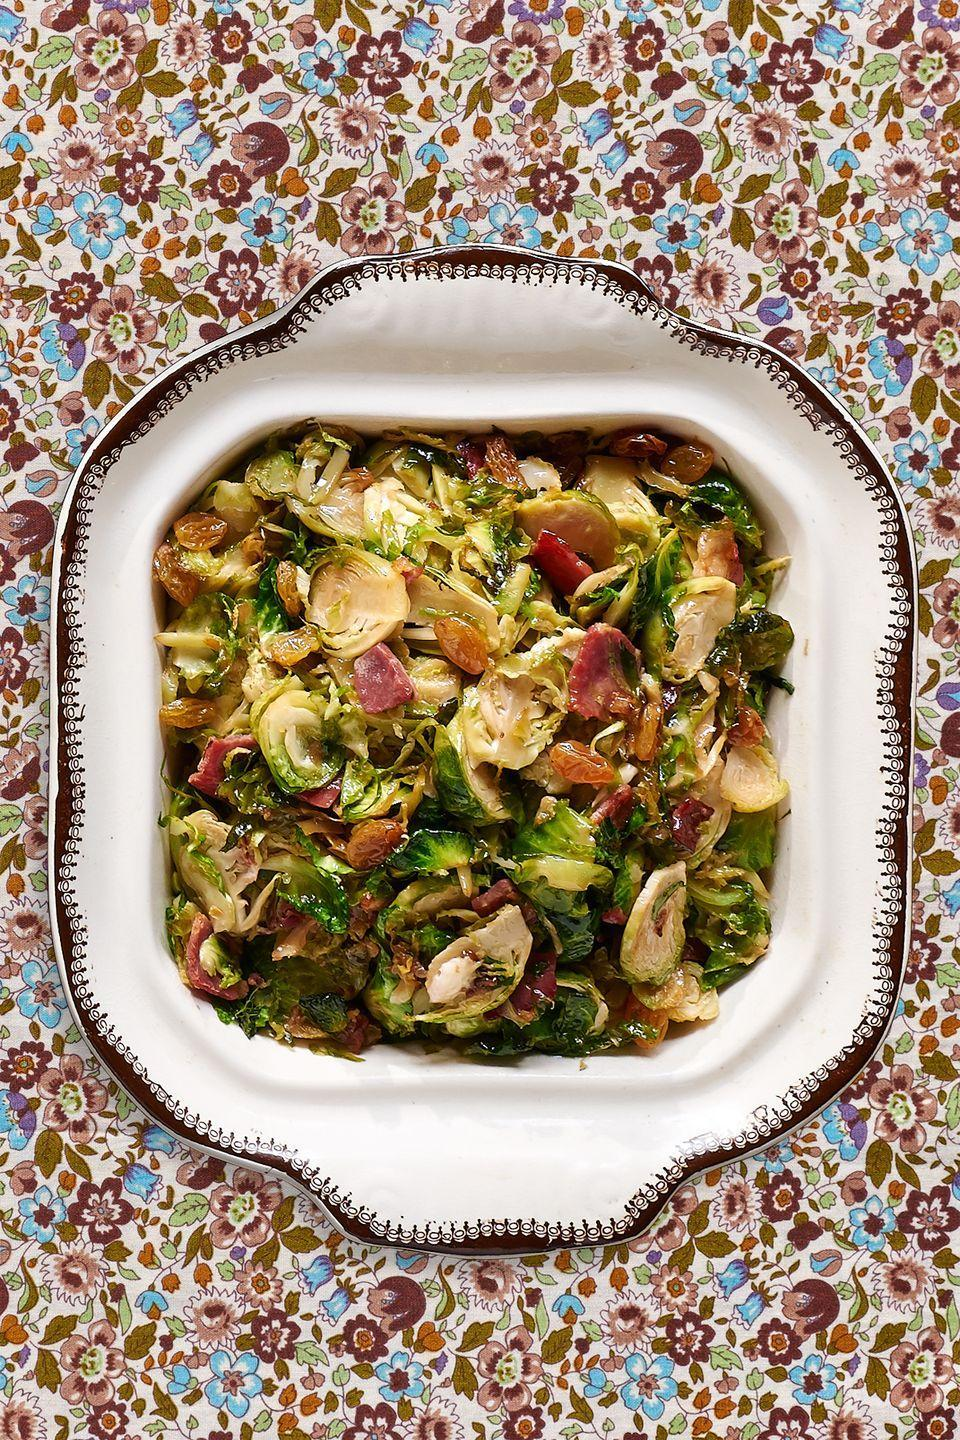 "<p>Earthy Brussels sprouts and robust country ham are the perfect combo in this savory side. </p><p><strong><a href=""https://www.countryliving.com/food-drinks/recipes/a36668/shaved-brussels-sprouts-with-country-ham/"" rel=""nofollow noopener"" target=""_blank"" data-ylk=""slk:Get the recipe"" class=""link rapid-noclick-resp"">Get the recipe</a>.</strong></p>"